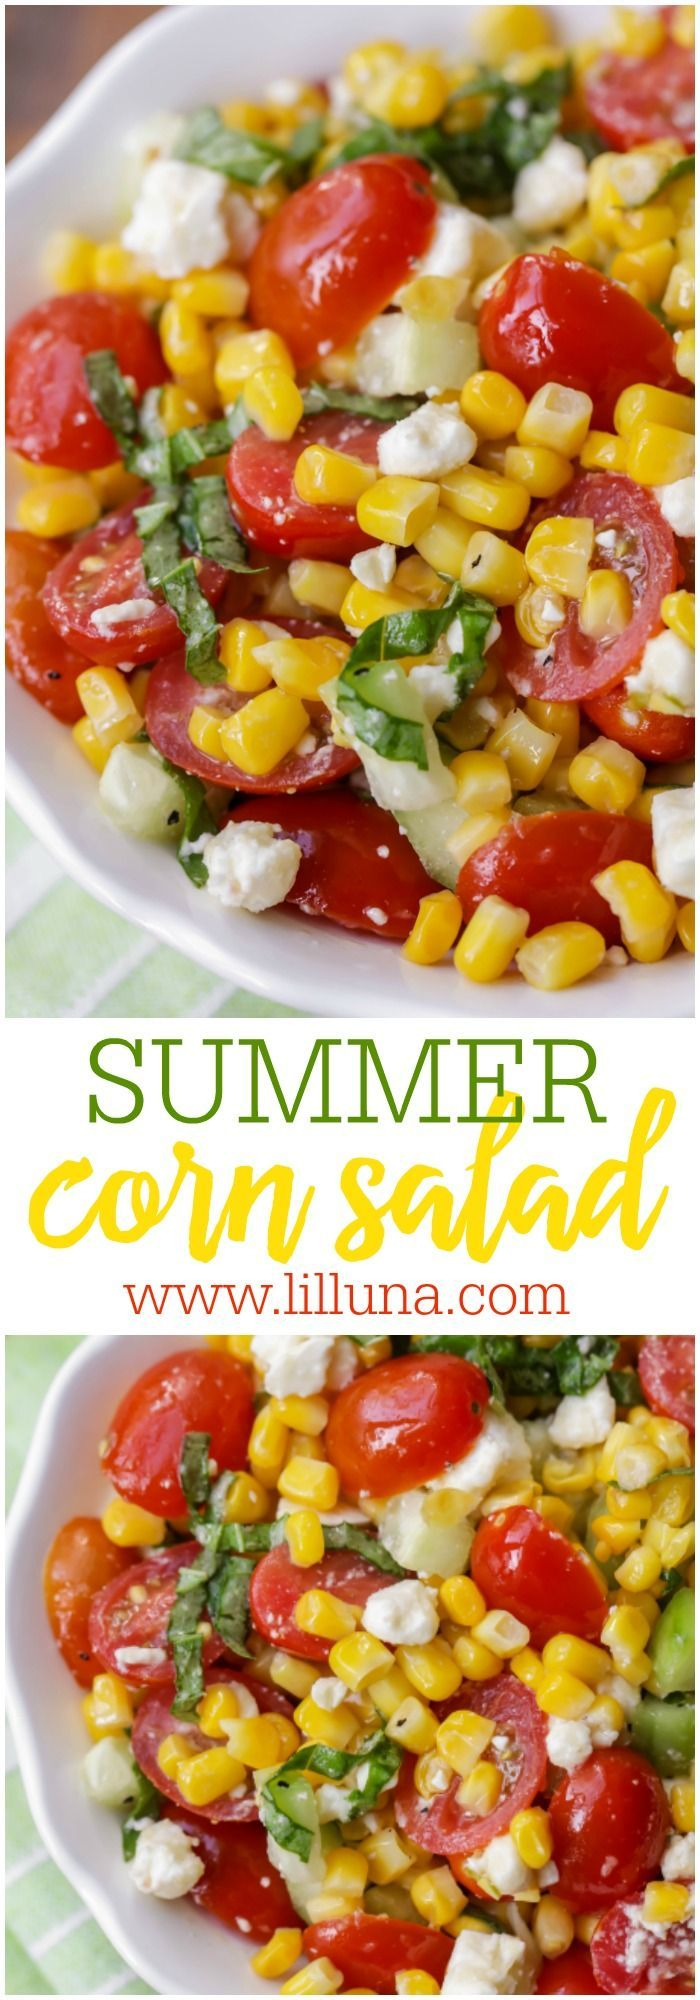 Summer Corn Salad - a light, flavorful salad filled with corn, tomatoes, feta, basil and cucumber. It's perfect for BBQs and will be a hit at any party!